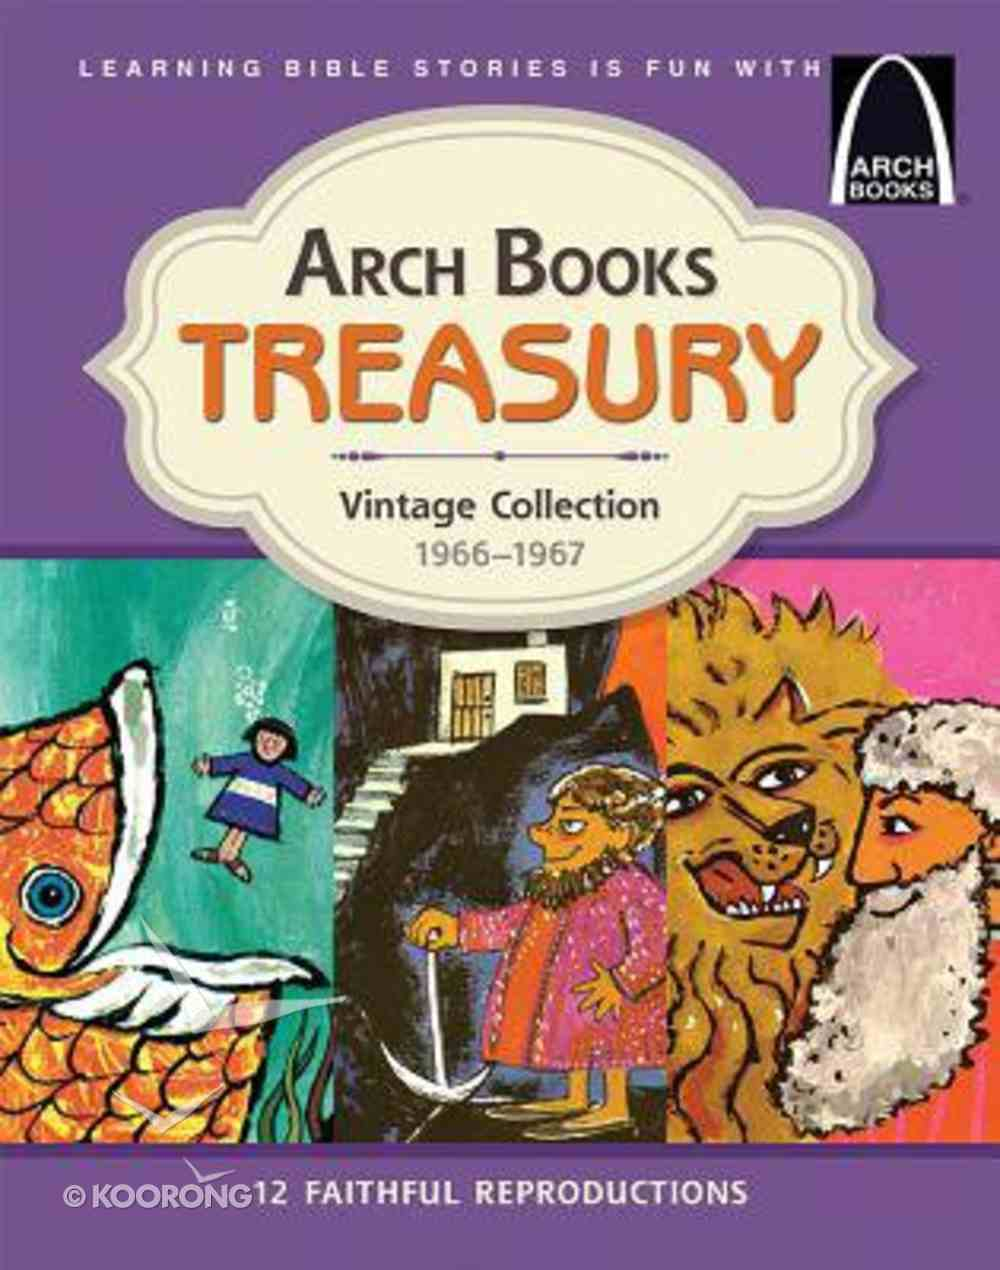 Vintage Collection 1966 - 1967 (12 Classic Arch Books) (Arch Books Series) Hardback